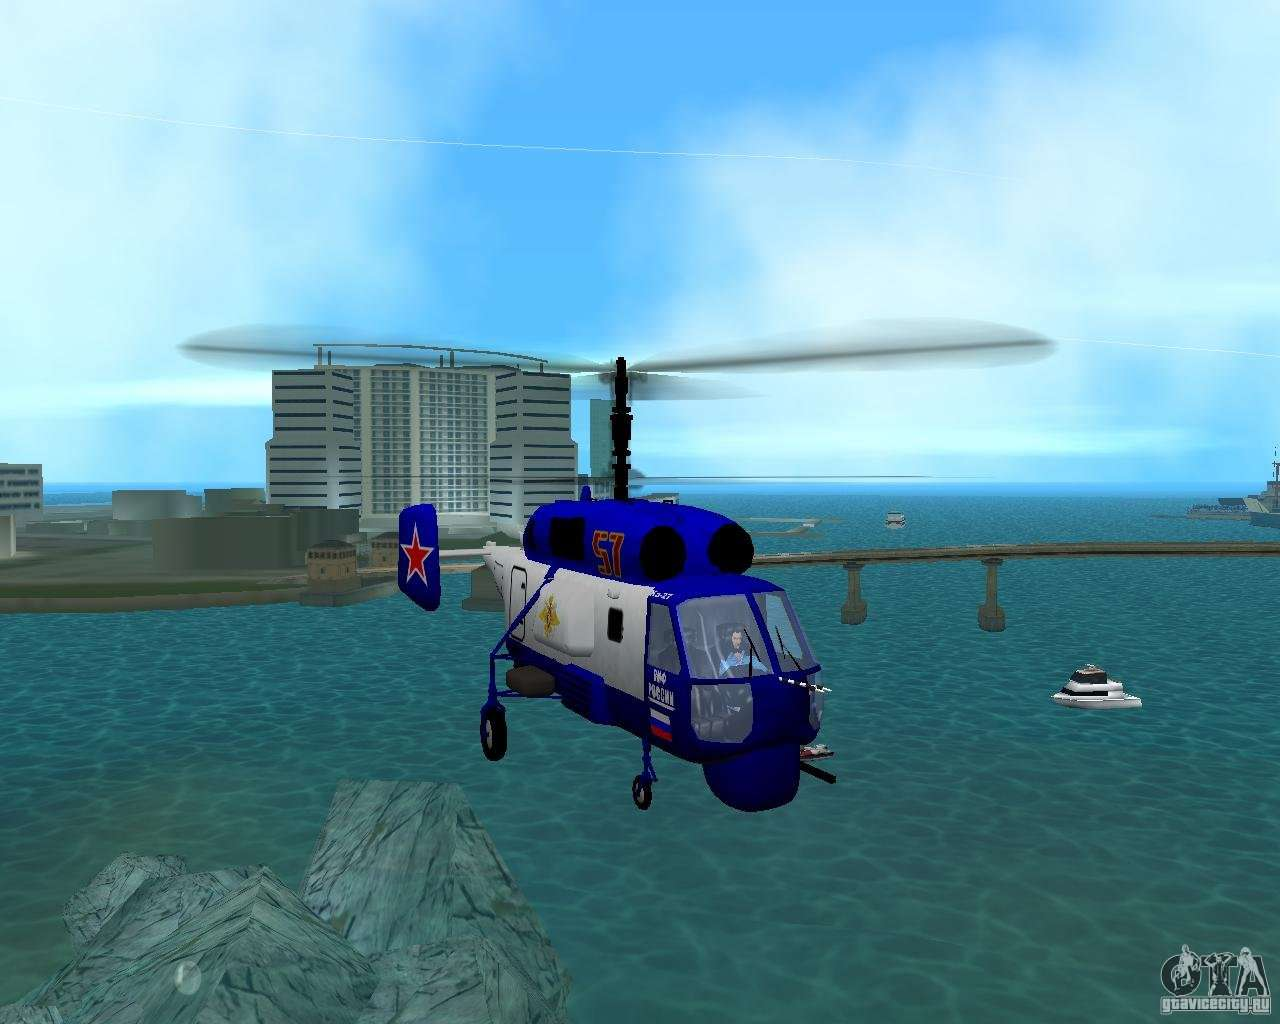 gta 3 cheat code for helicopter with 18162 Ka 27 on Cheat Codes Of Gta Vice City By Indrajeet 143 in addition 18162 Ka 27 besides Watch in addition Watch in addition Watch.